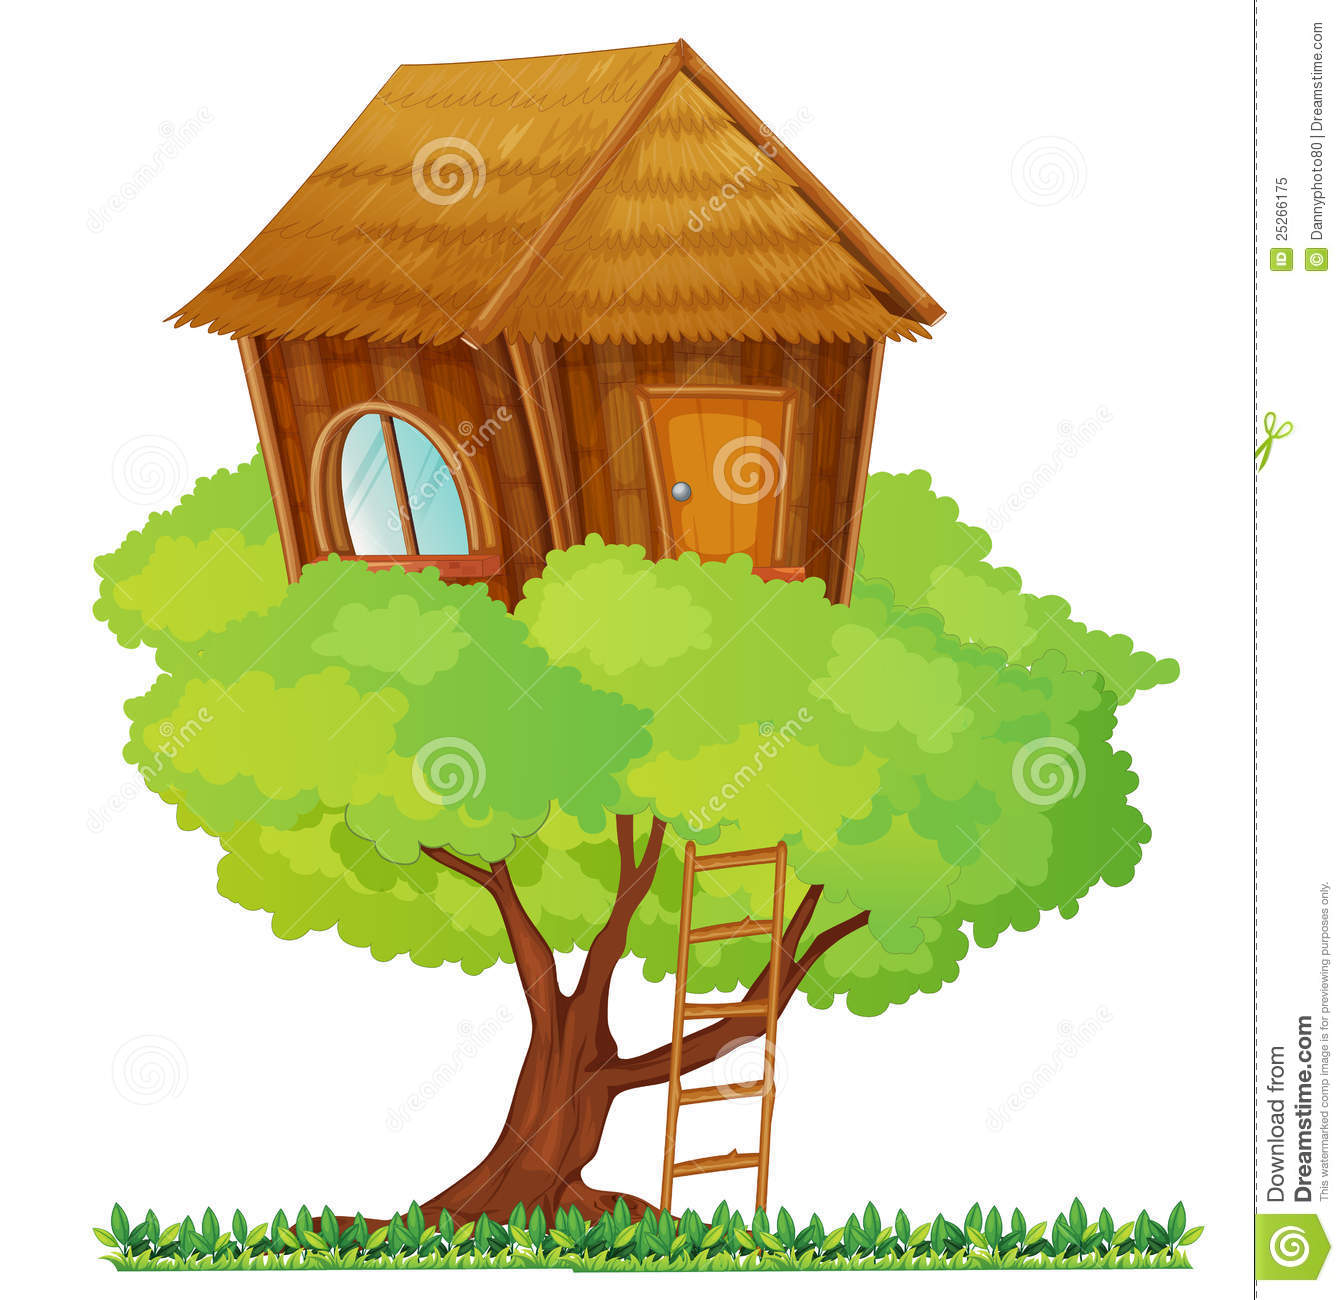 Magic Tree House Clipart (34+).